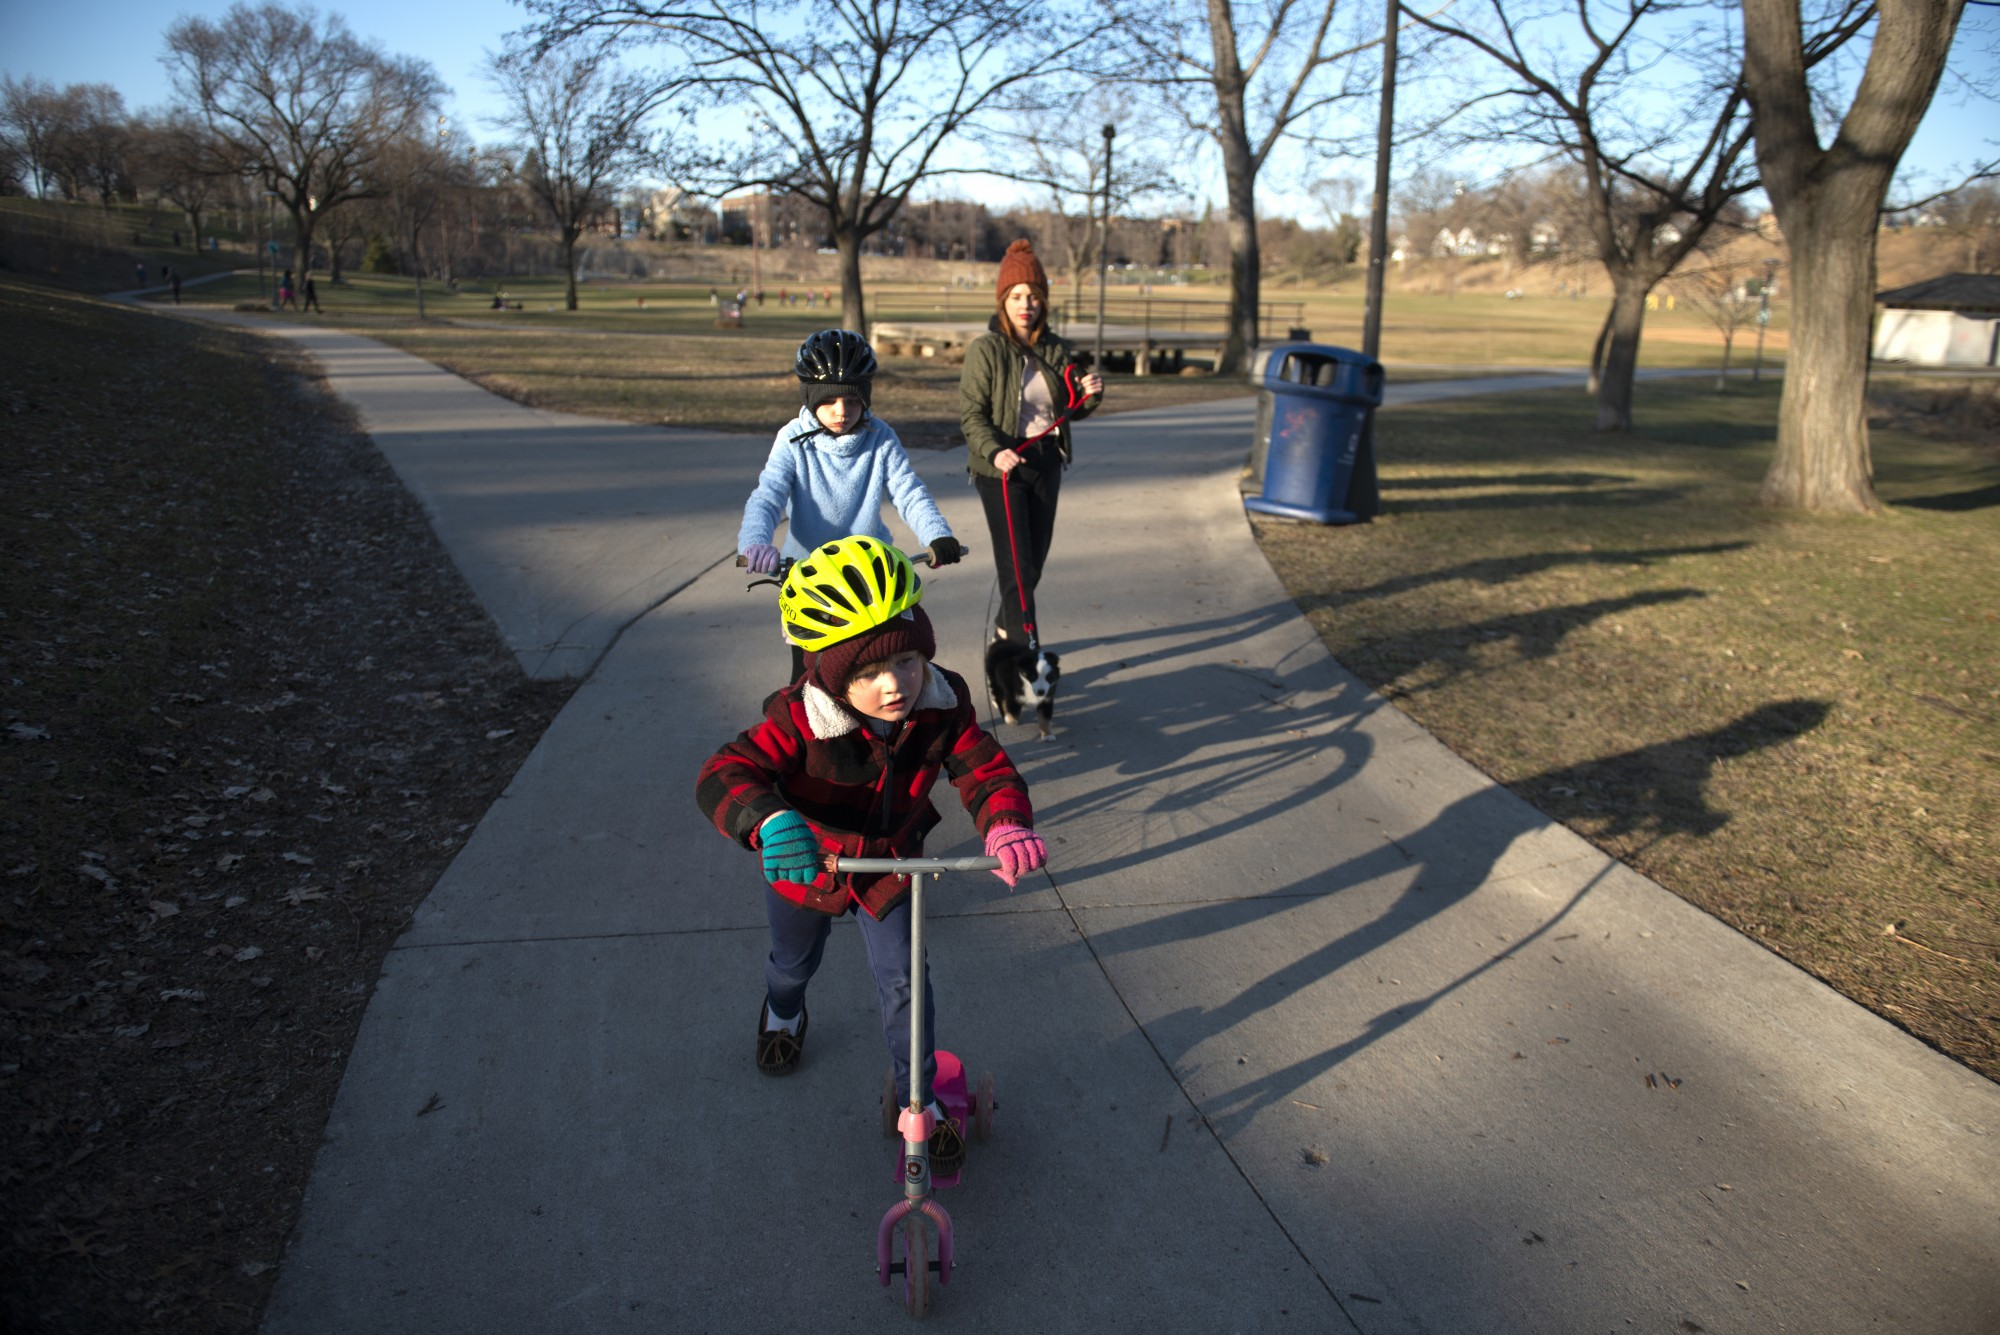 Nurse Johannah Bjorgaard takes her kids Islie (7) and Sullivan (4) to Powderhorn park in Minneapolis on Tuesday, March 31. They live nearby and frequent the park to help the kids get their energy out.